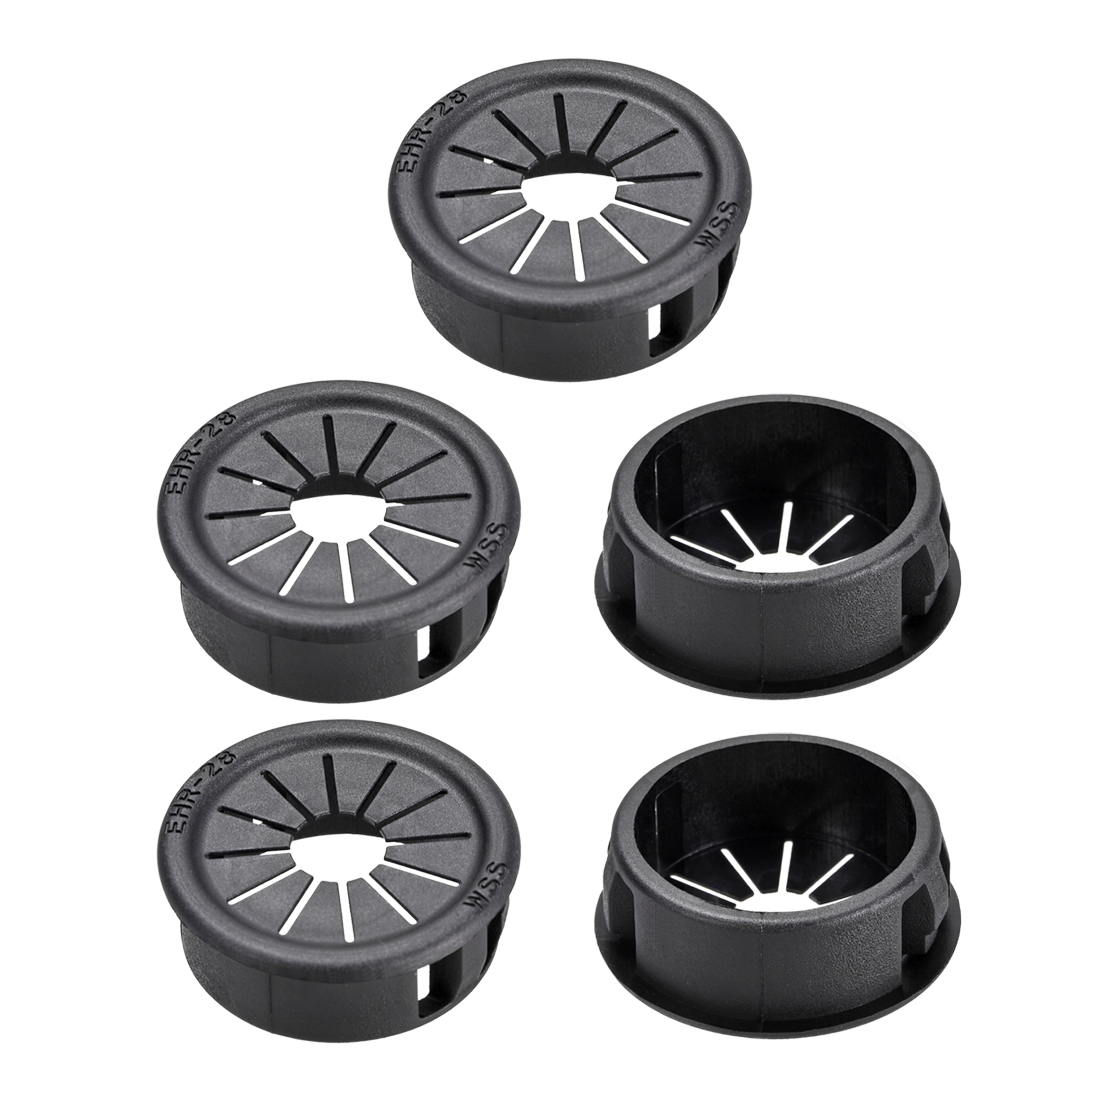 28mm Mounted Dia Cable Hose Snap Bushing Grommet Protector Black 5pcs